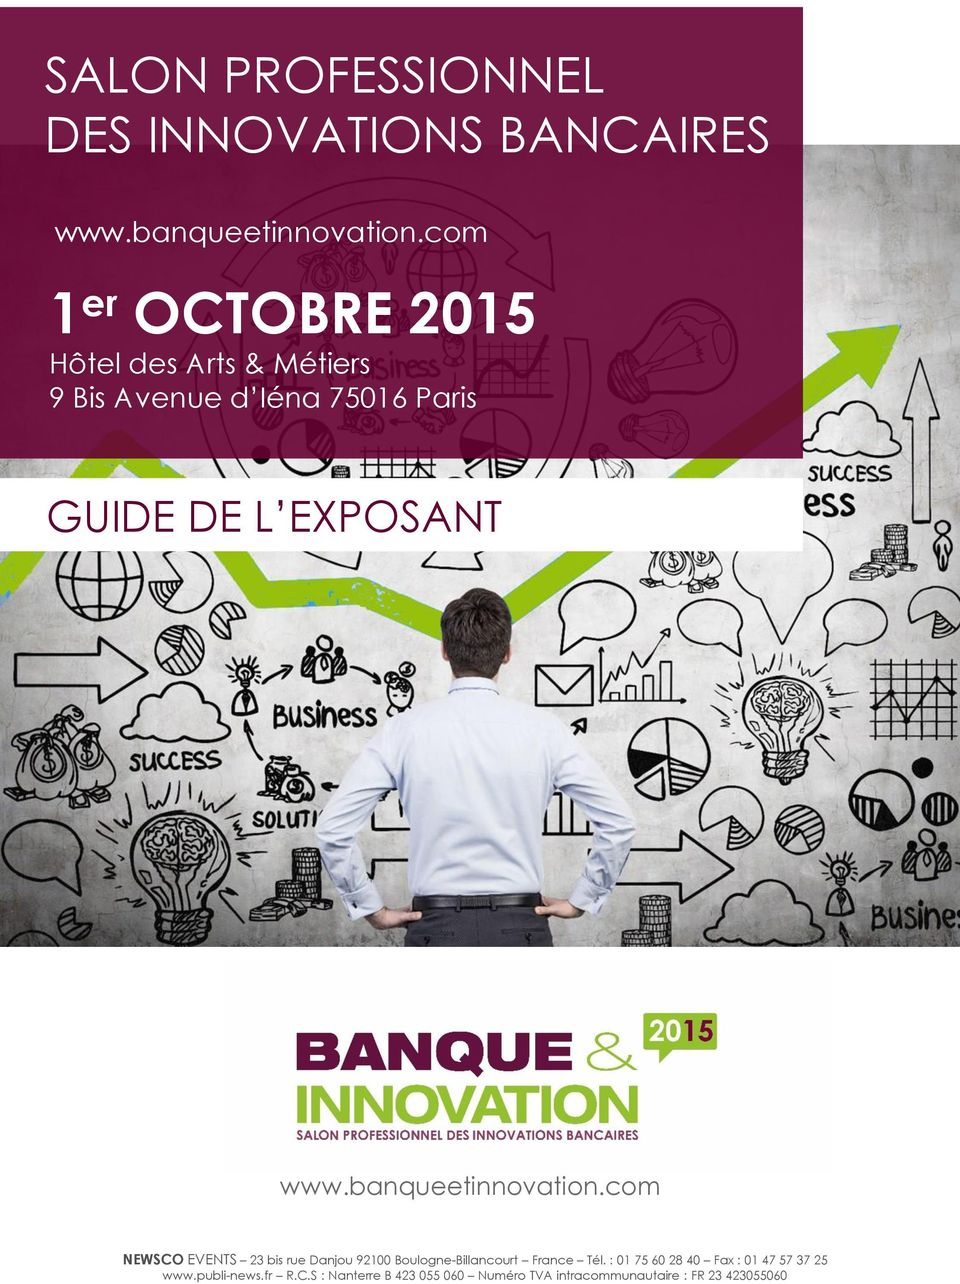 L EXPOSANT com NEWSCO EVENTS 23 bis rue Danjou 92100 Boulogne-Billancourt France Tél.